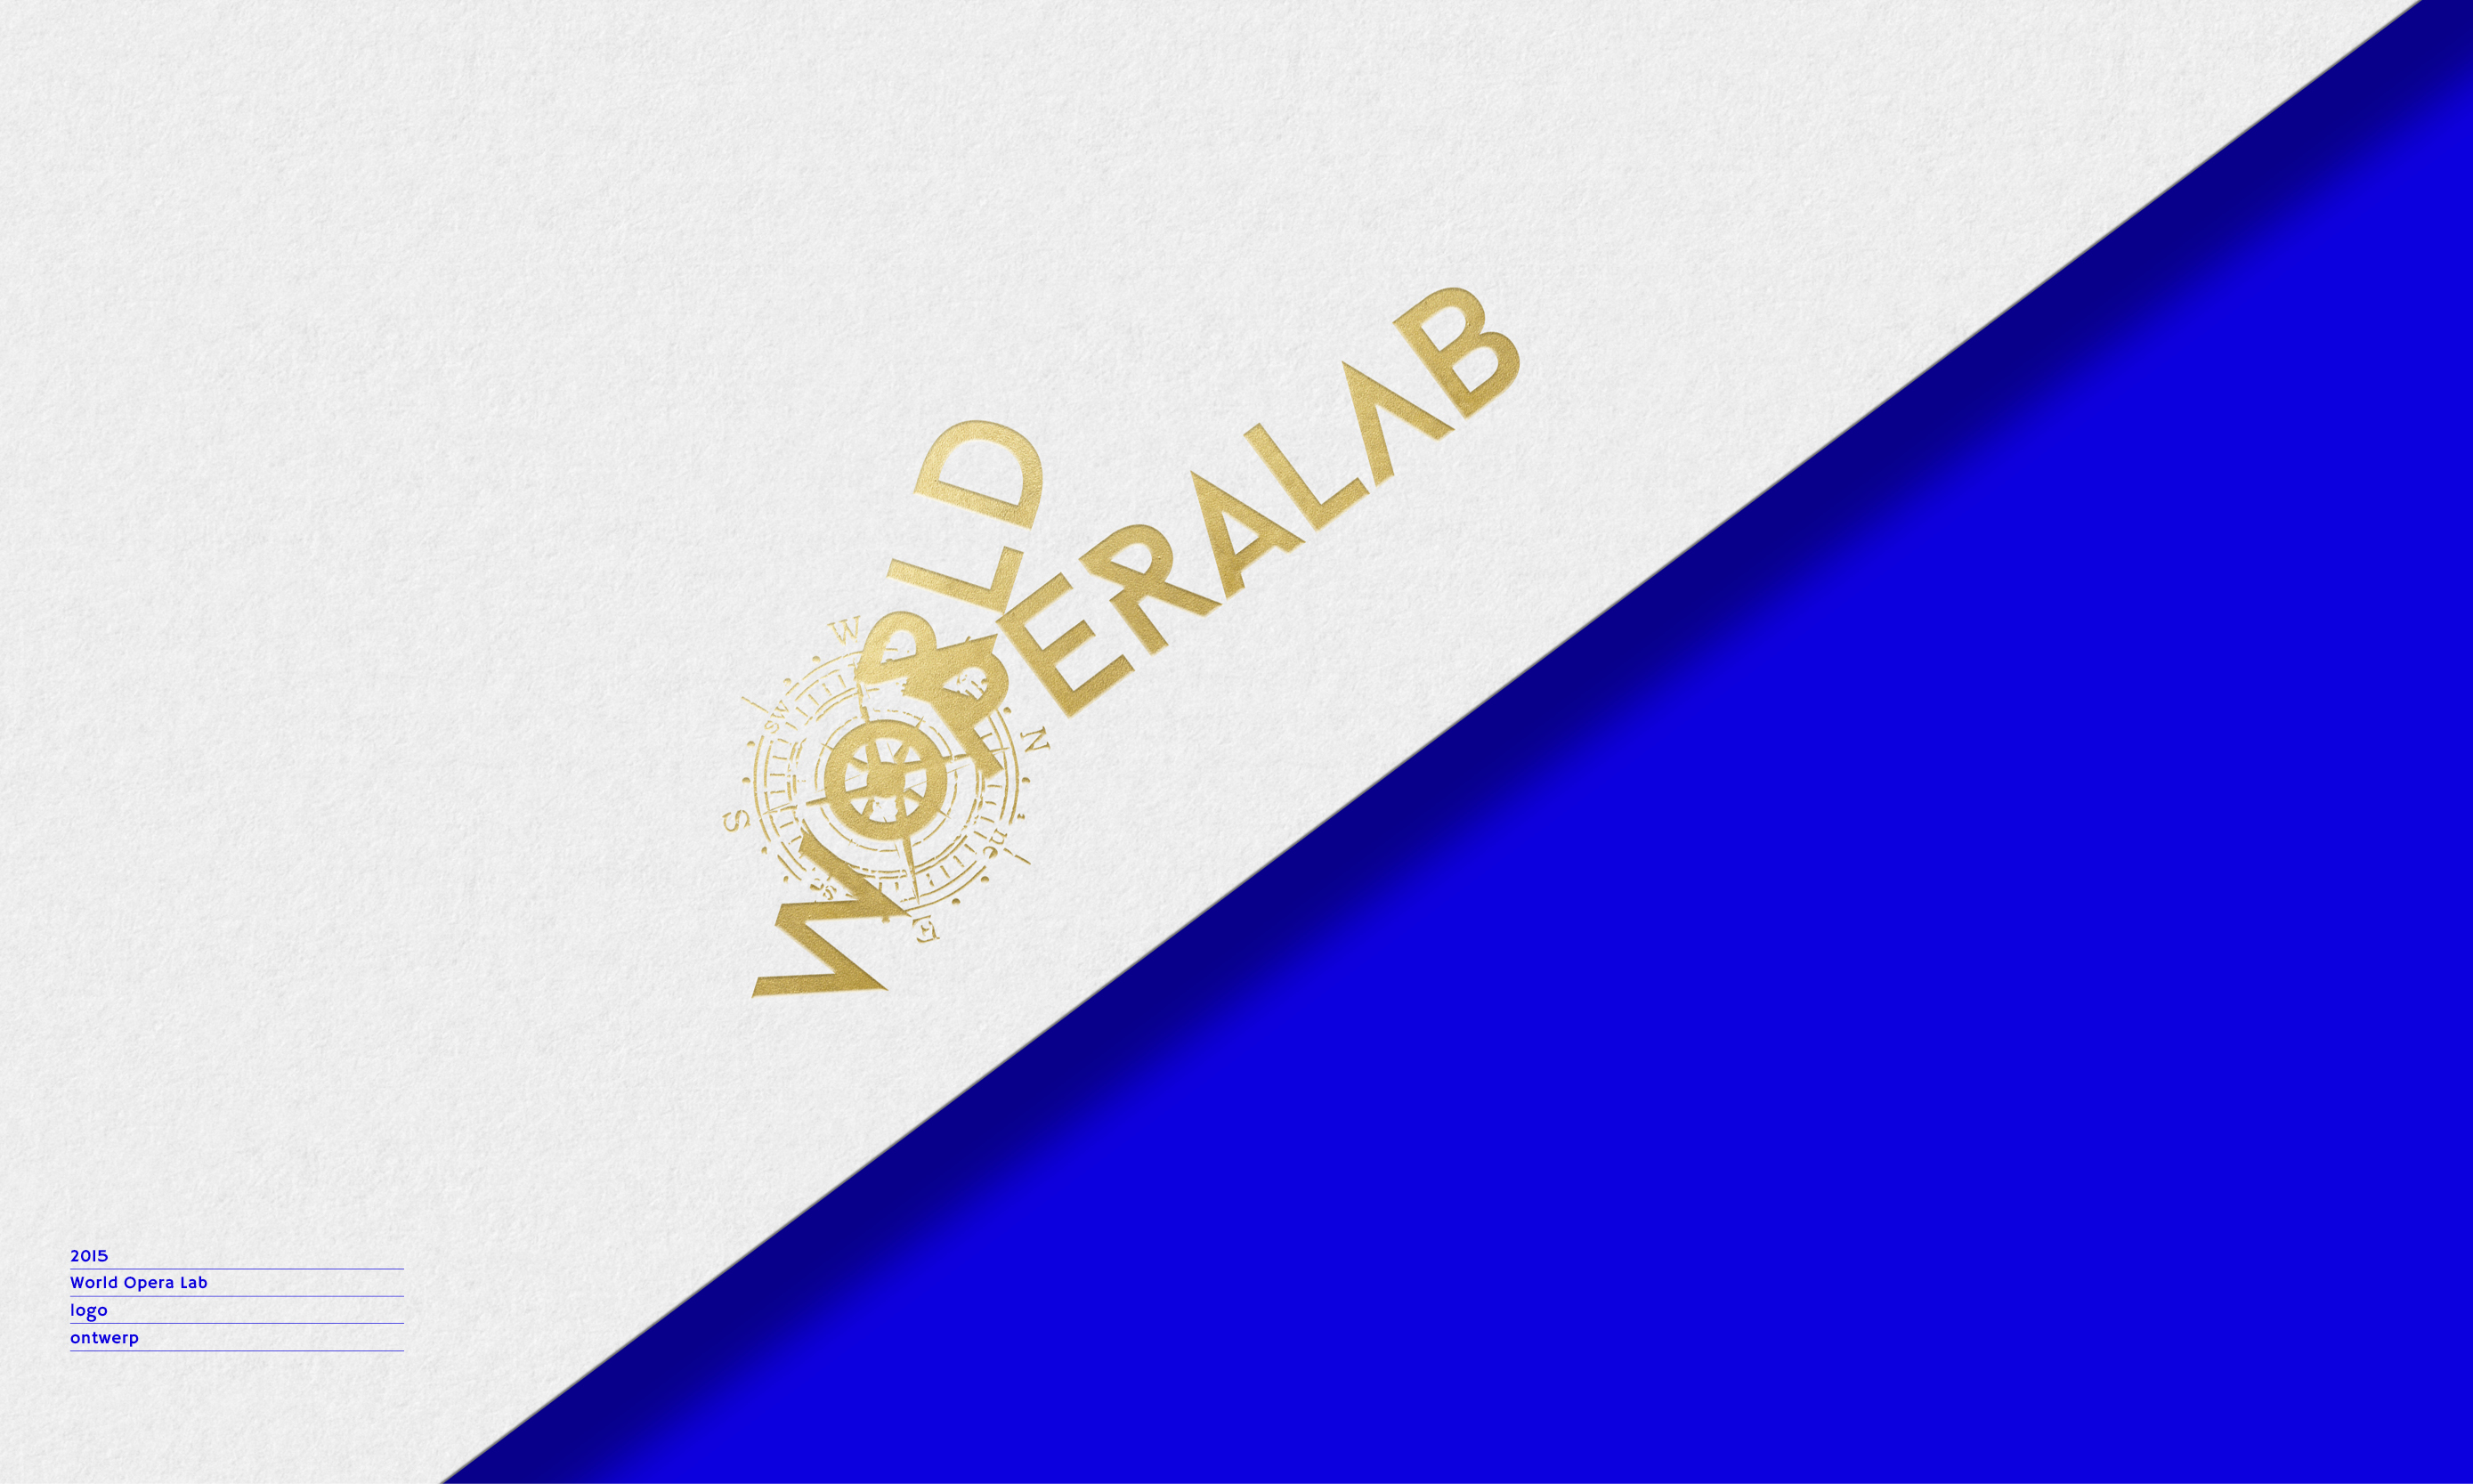 logo voor World Opera Lab